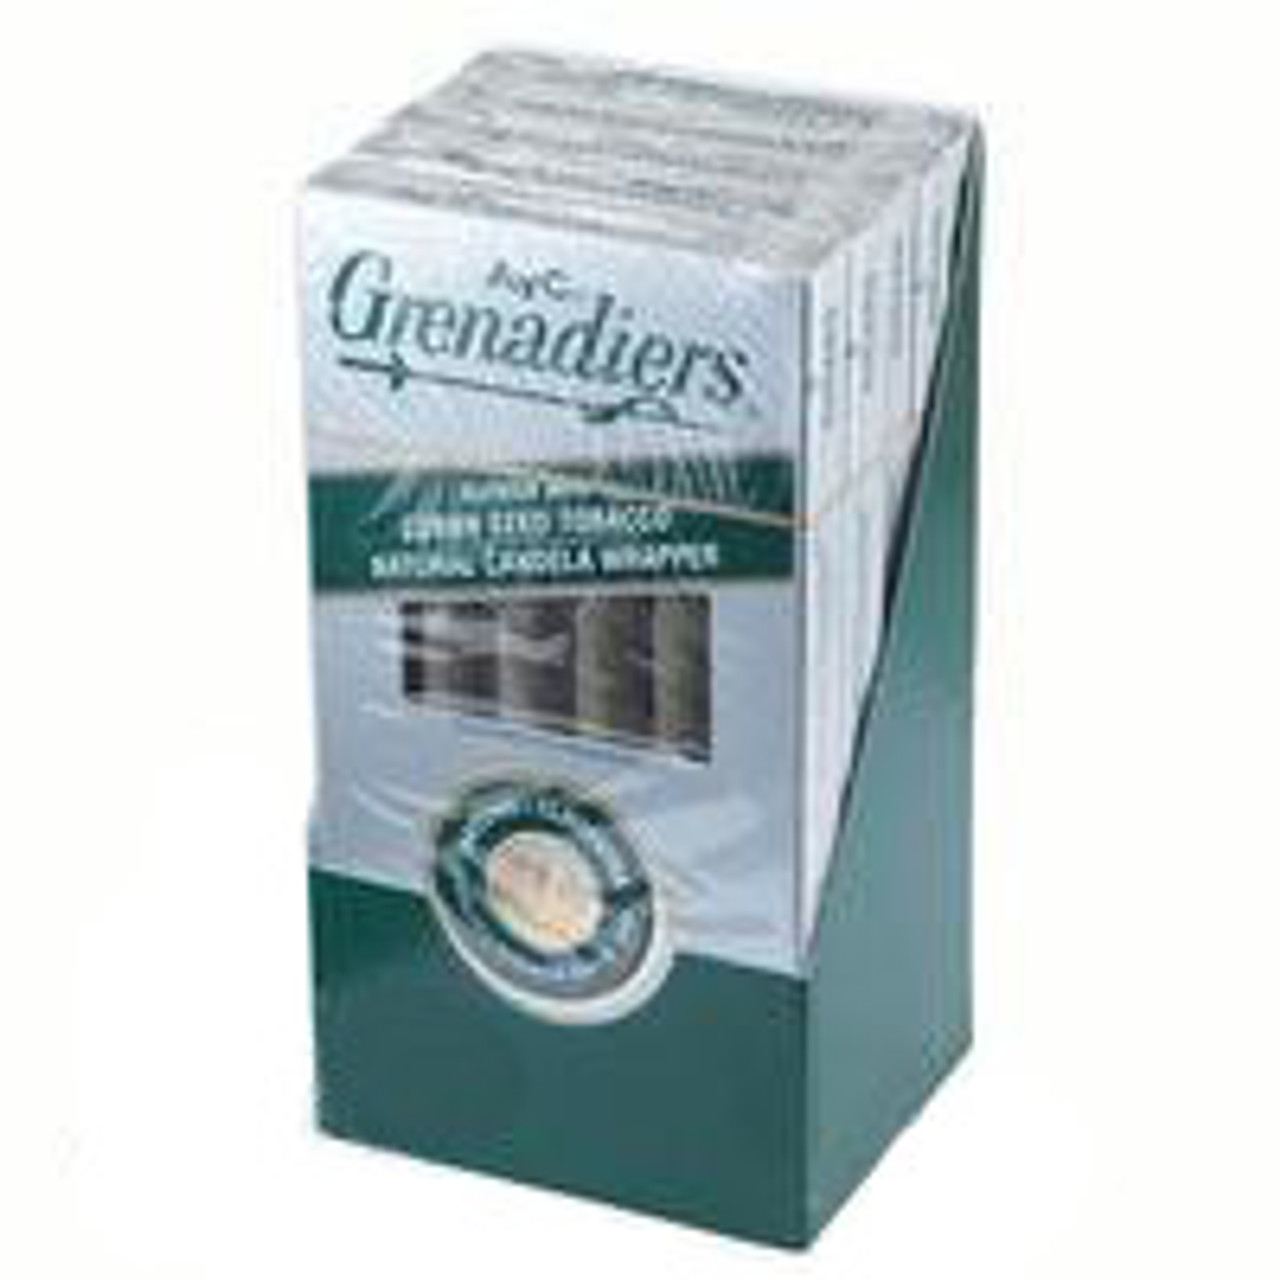 Antonio Y Cleopatra Grenadier Cigars (5 Packs Of 6) - Dbl. Claro